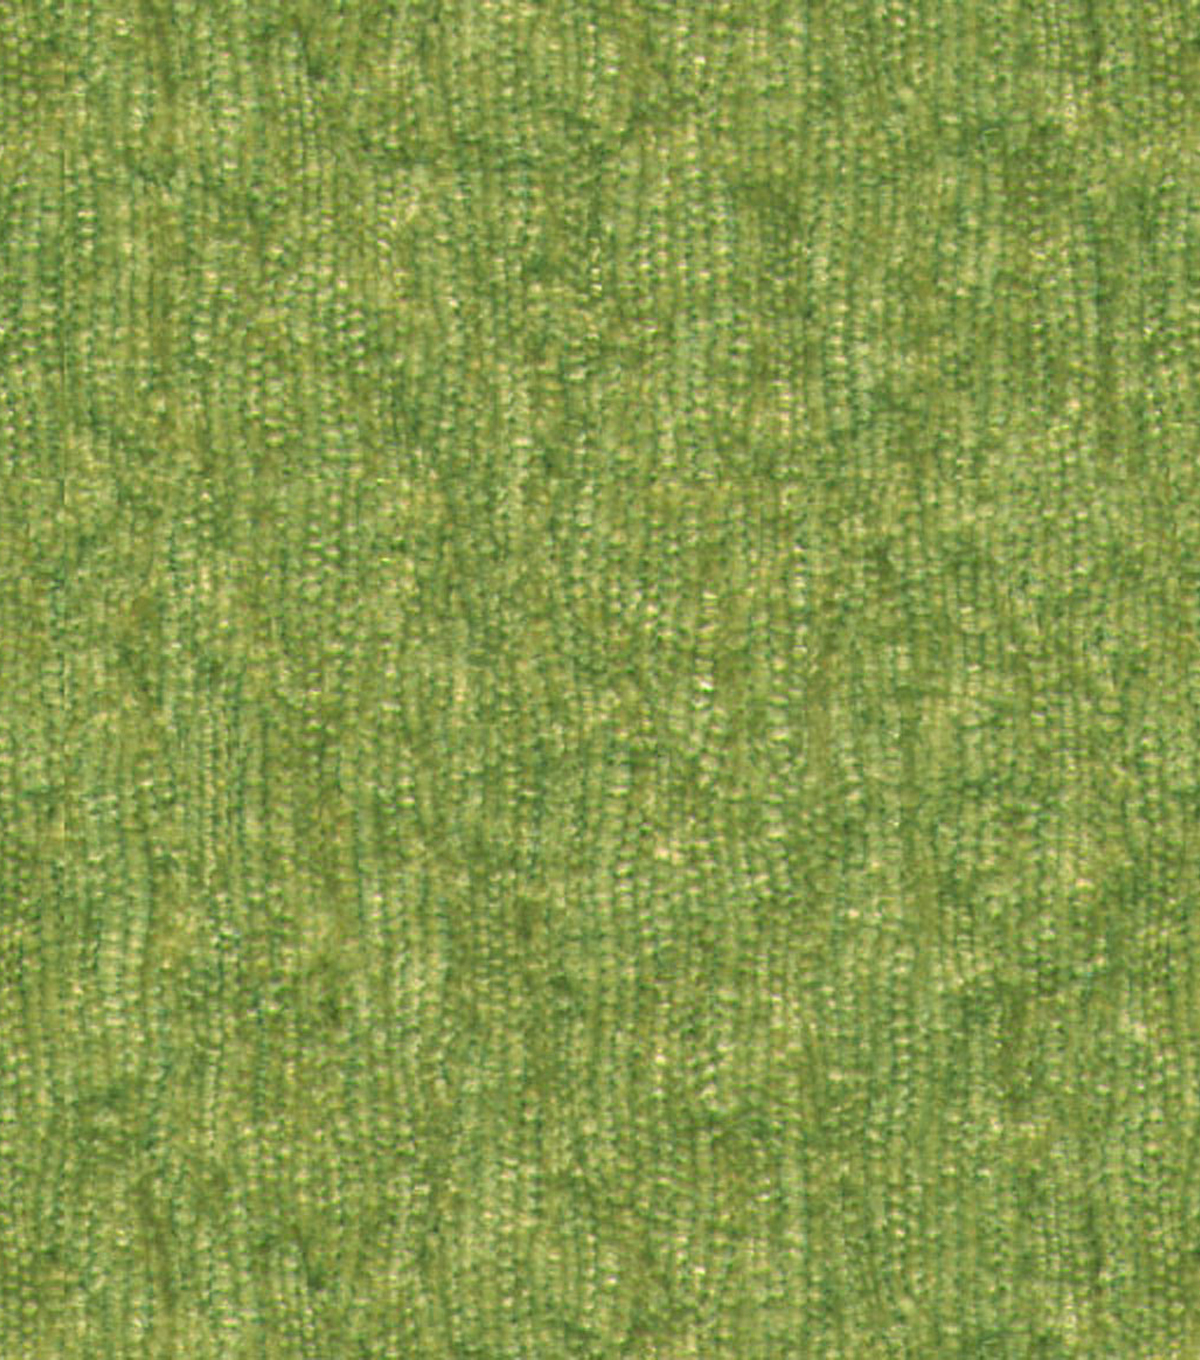 Home Decor 8\u0022x8\u0022 Fabric Swatch-Barrow M7281 5743 Thyme